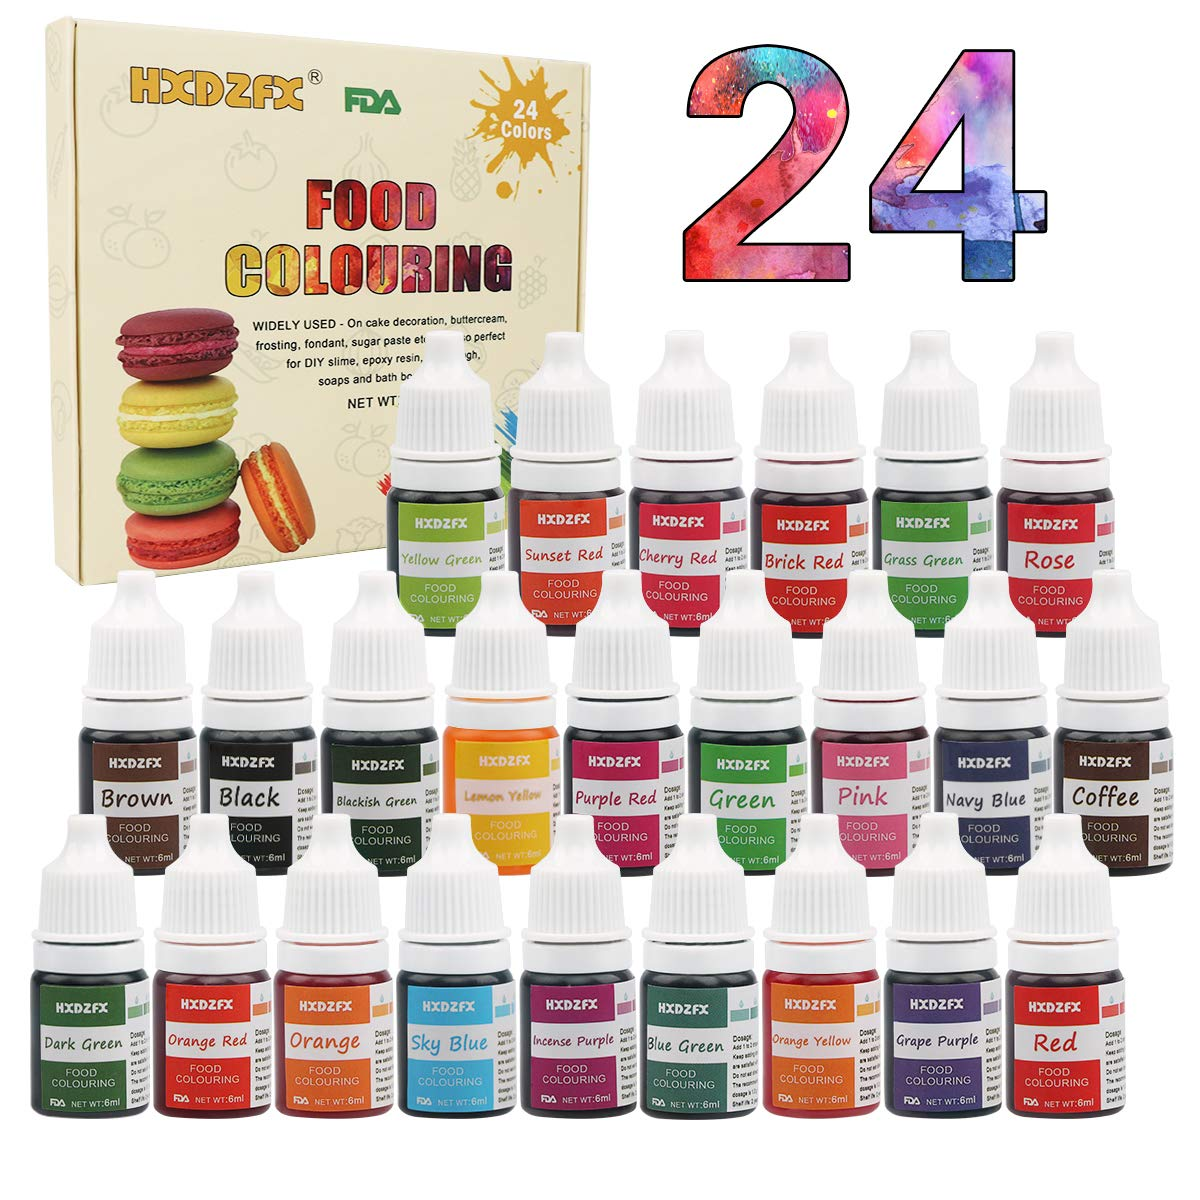 Food Coloring - 24 Color Rainbow Fondant Cake Food Coloring Set for Baking,Decorating,Icing and Cooking - neon Liquid Food Color Dye for Slime, Soap Making Kit and DIY Crafts. (6ml)